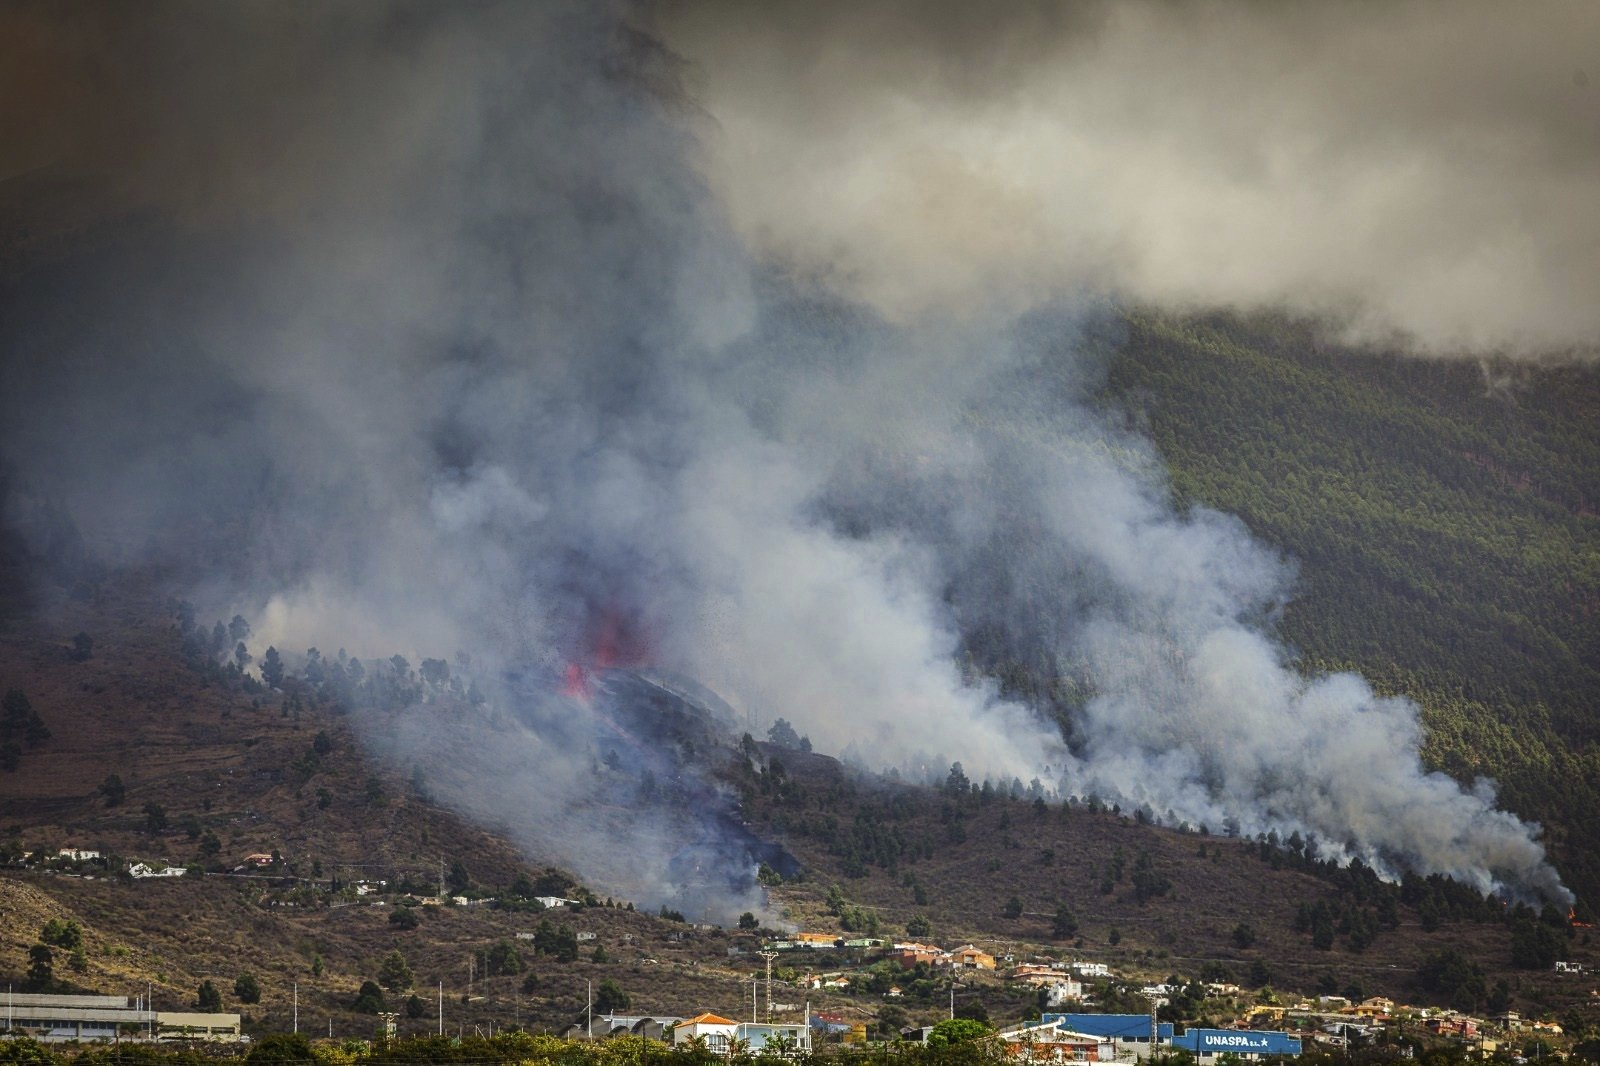 Smoke rises at the Cumbre Viegja volcanic on the island of La Palma in the Canaries, Spain, Sept. 19, 2021. (AP Photo)